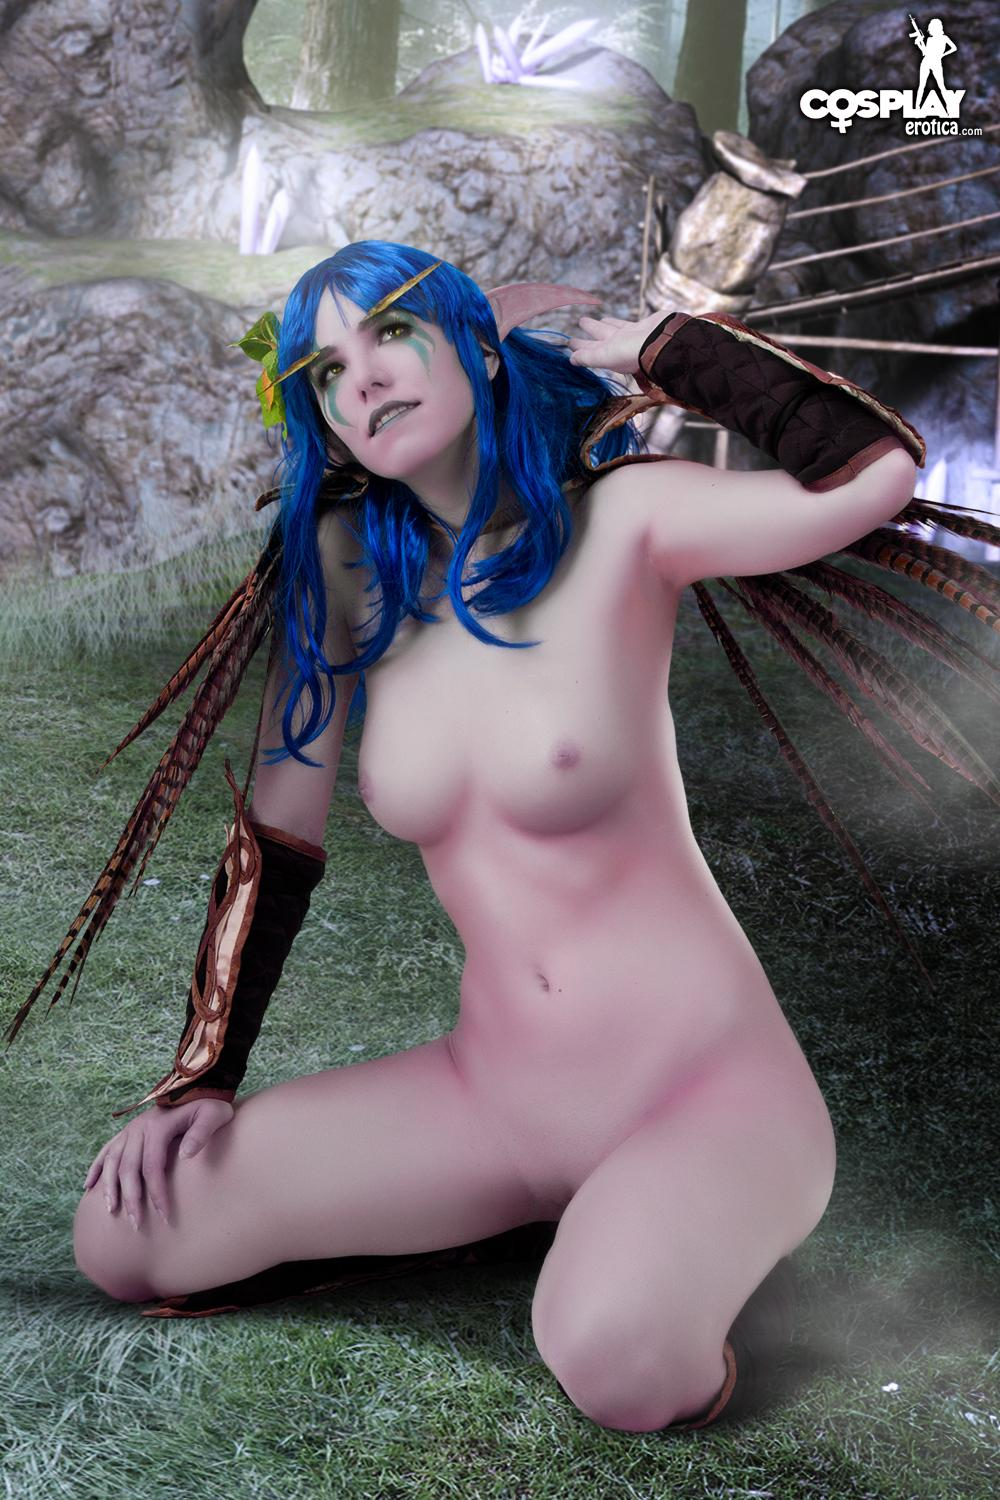 World of warcraft cosplay creampie exploited streaming